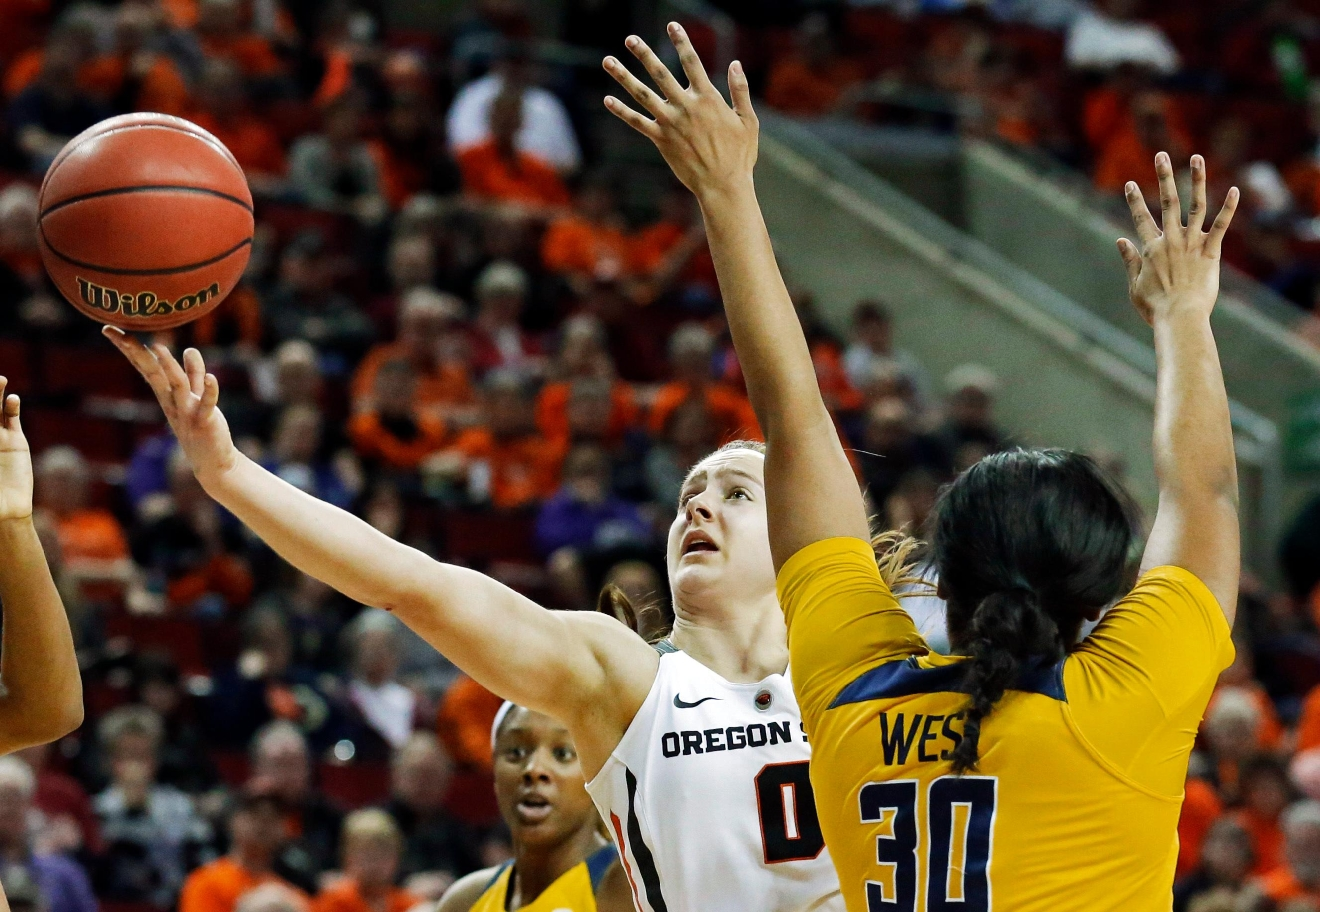 Oregon State guard Mikayla Pivec (0) puts up a shot against California forward CJ West (30) in the first half of an NCAA college basketball game in the Pac-12 Conference tournament, Friday, March 3, 2017, in Seattle. (AP Photo/Ted S. Warren)